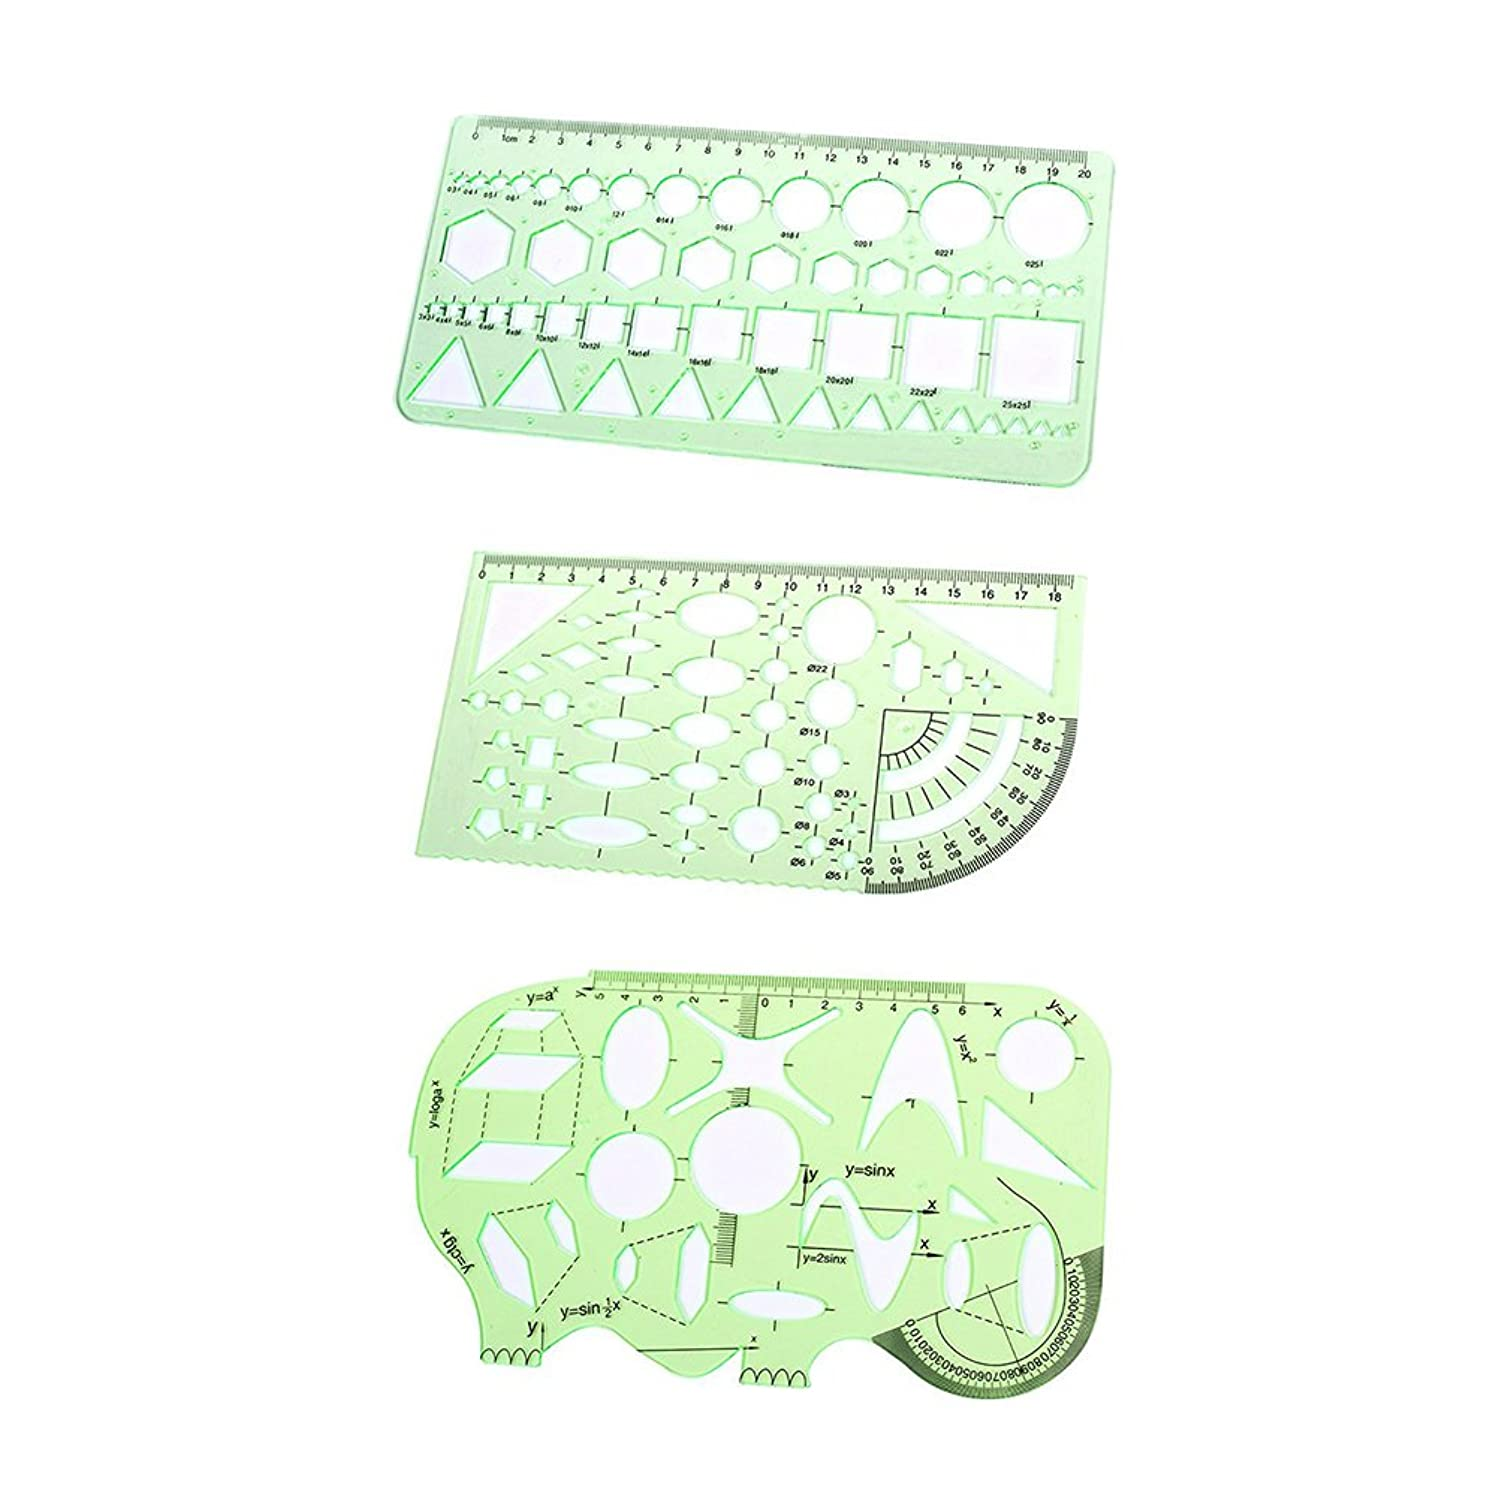 CellCase Plastic Measuring Templates Geometric Rulers for Office School (Set 1 - 3pcs Green) lmpwueszirgj